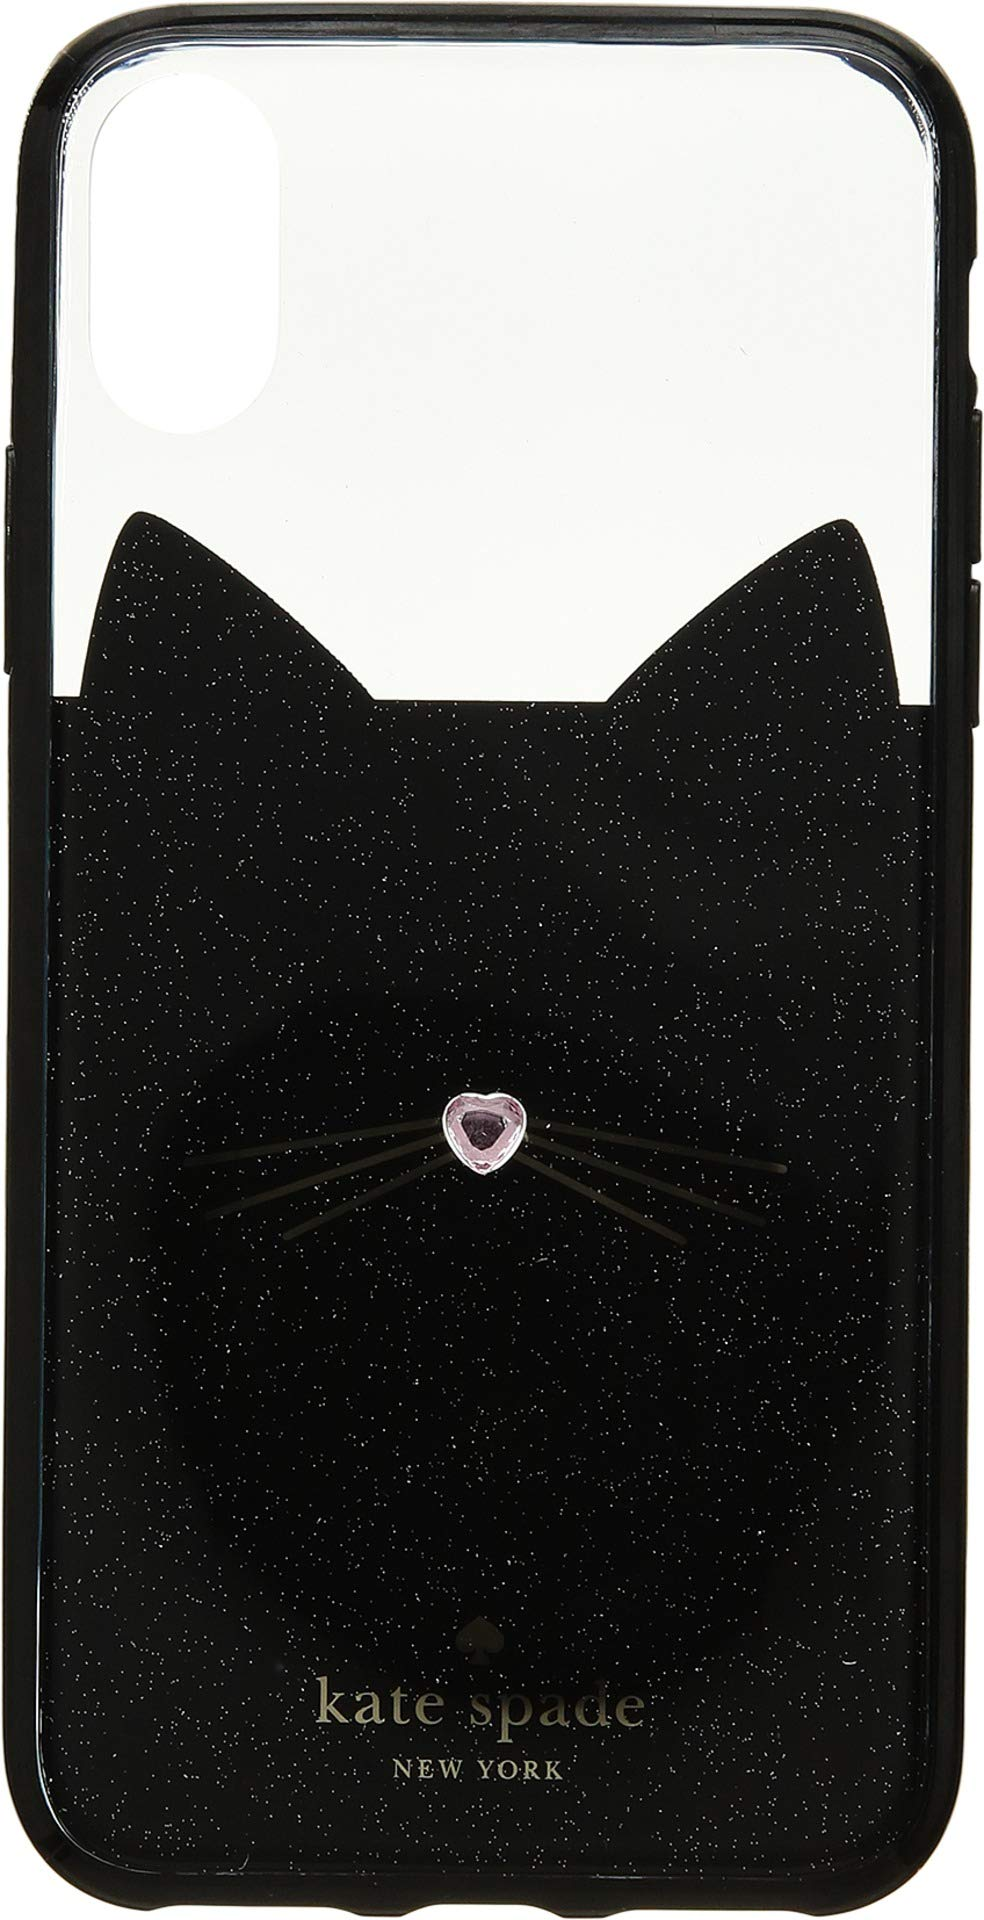 Kate Spade New York Women's Jeweled Glitter Cat iPhone Case for iPhone X Black/Multi One Size